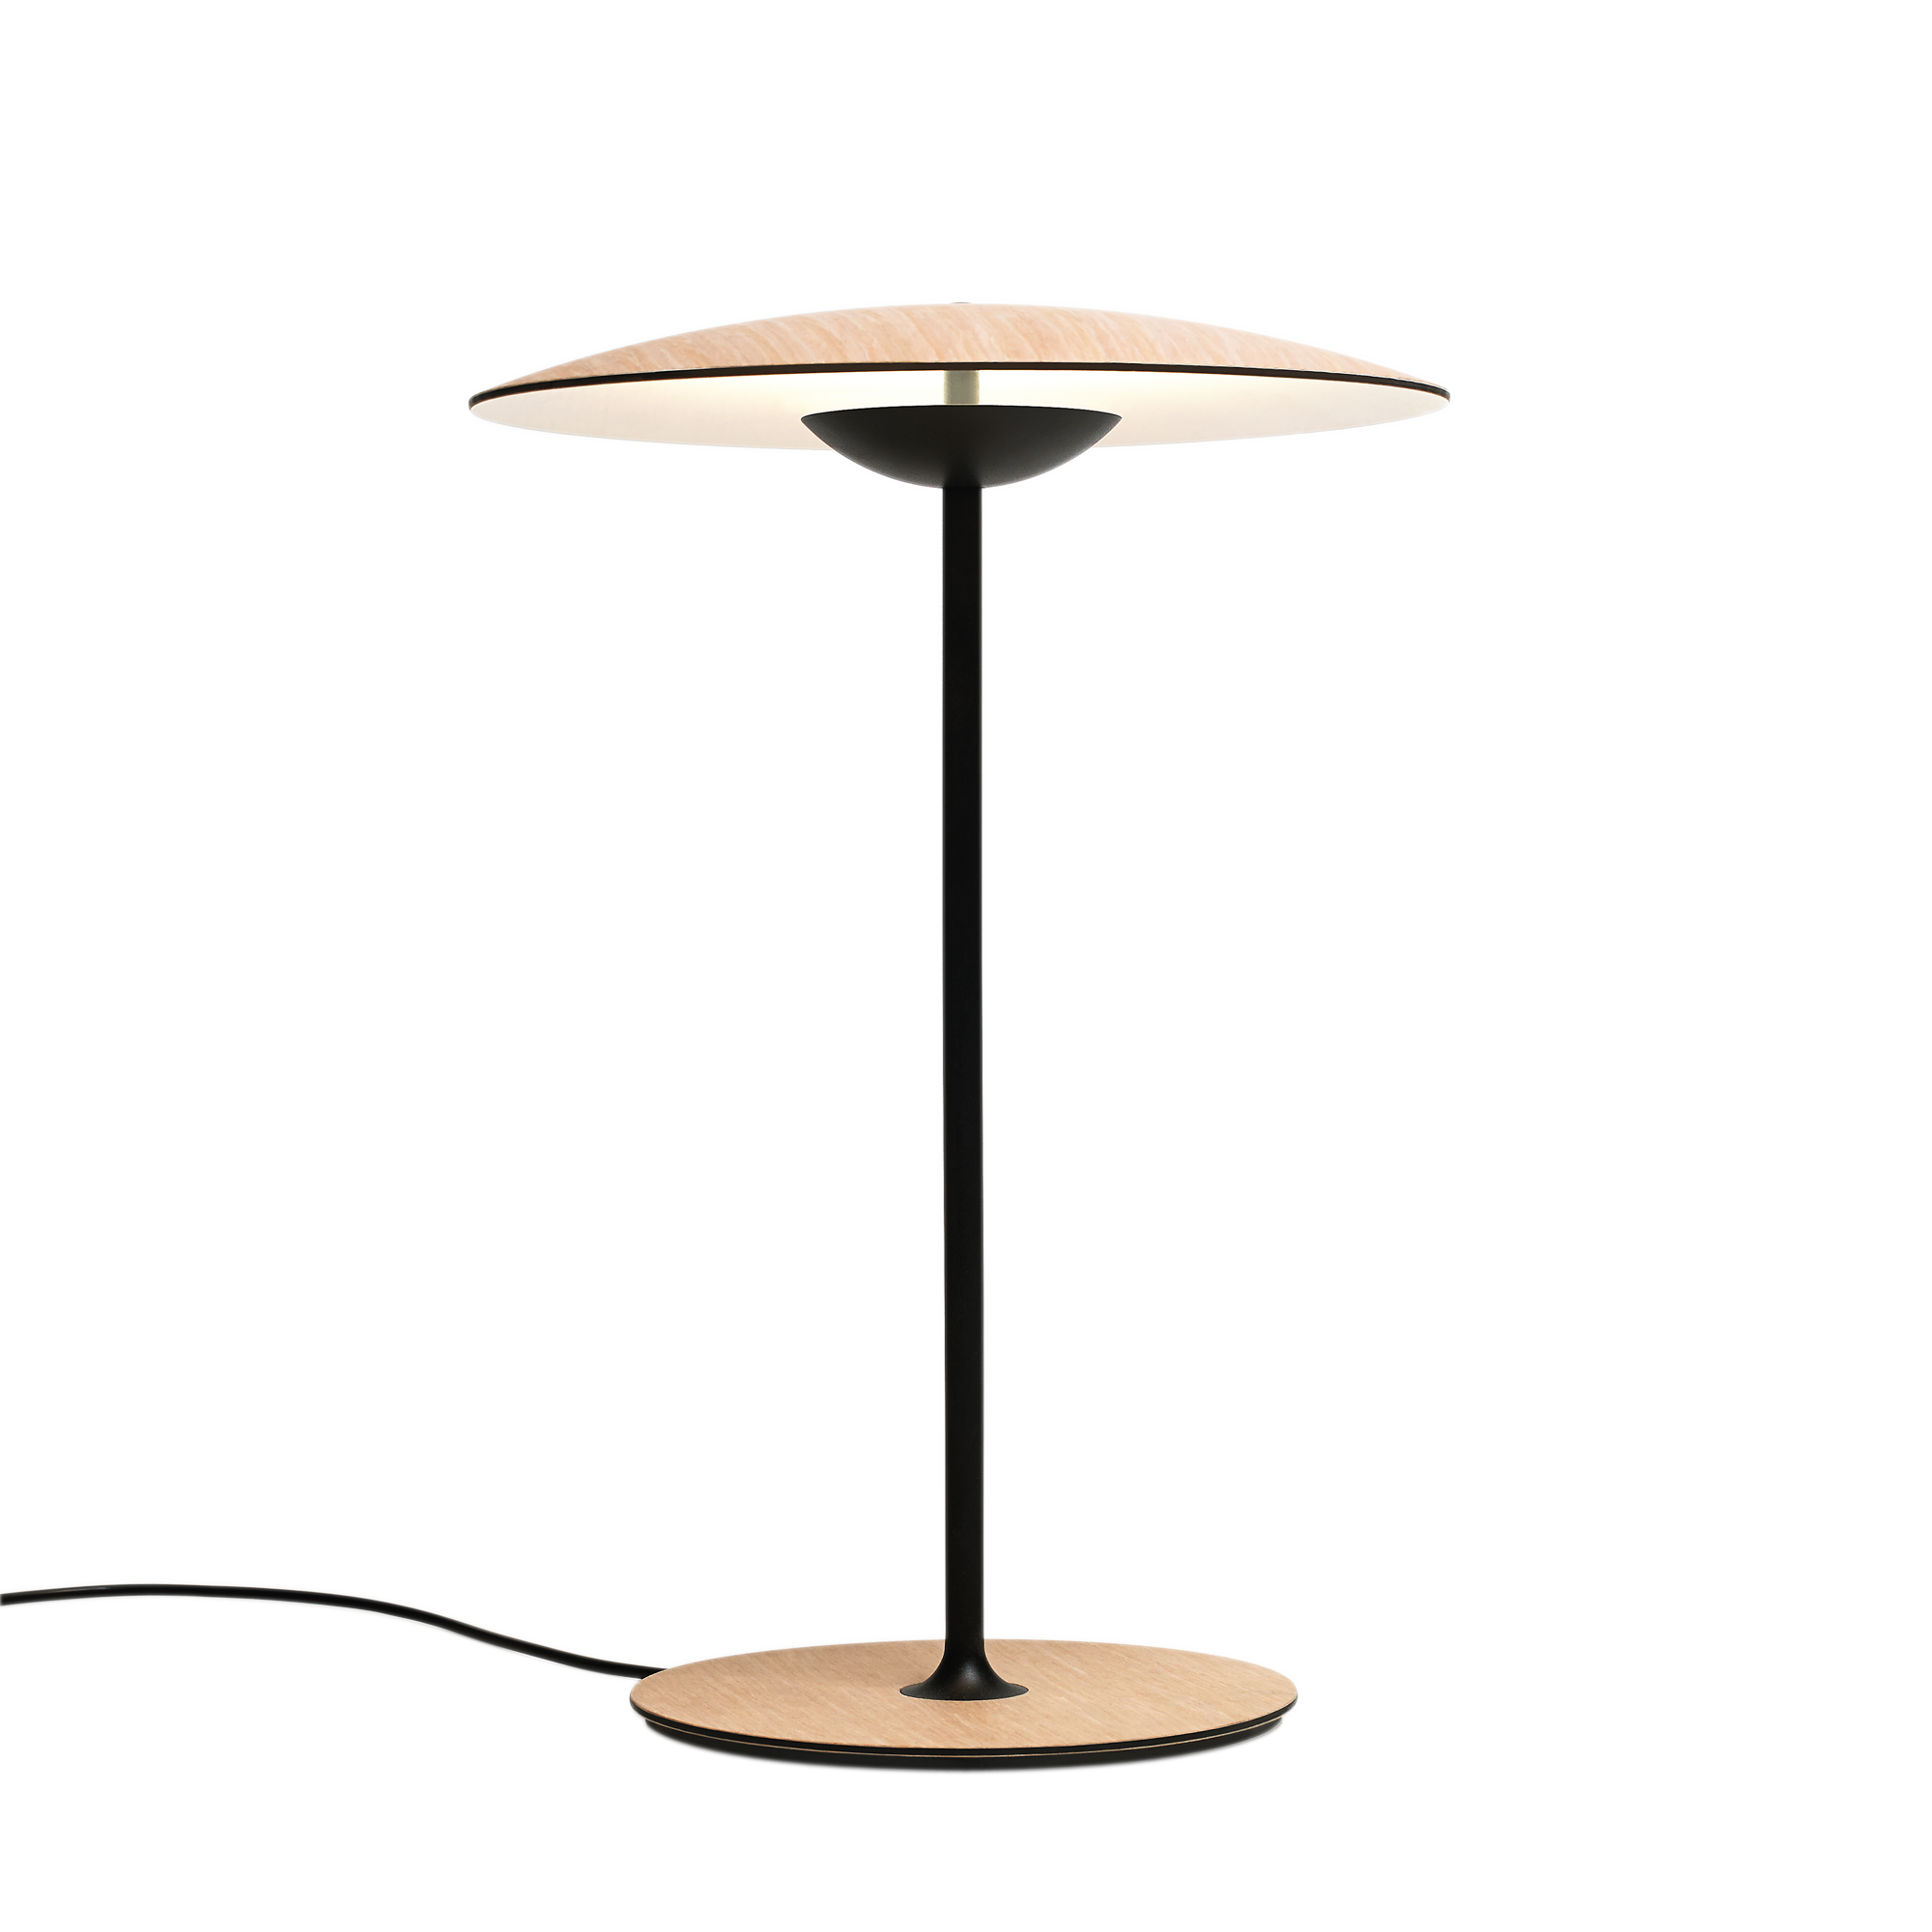 Ginger table lamp in white oak with thin black stand and slightly curved shade